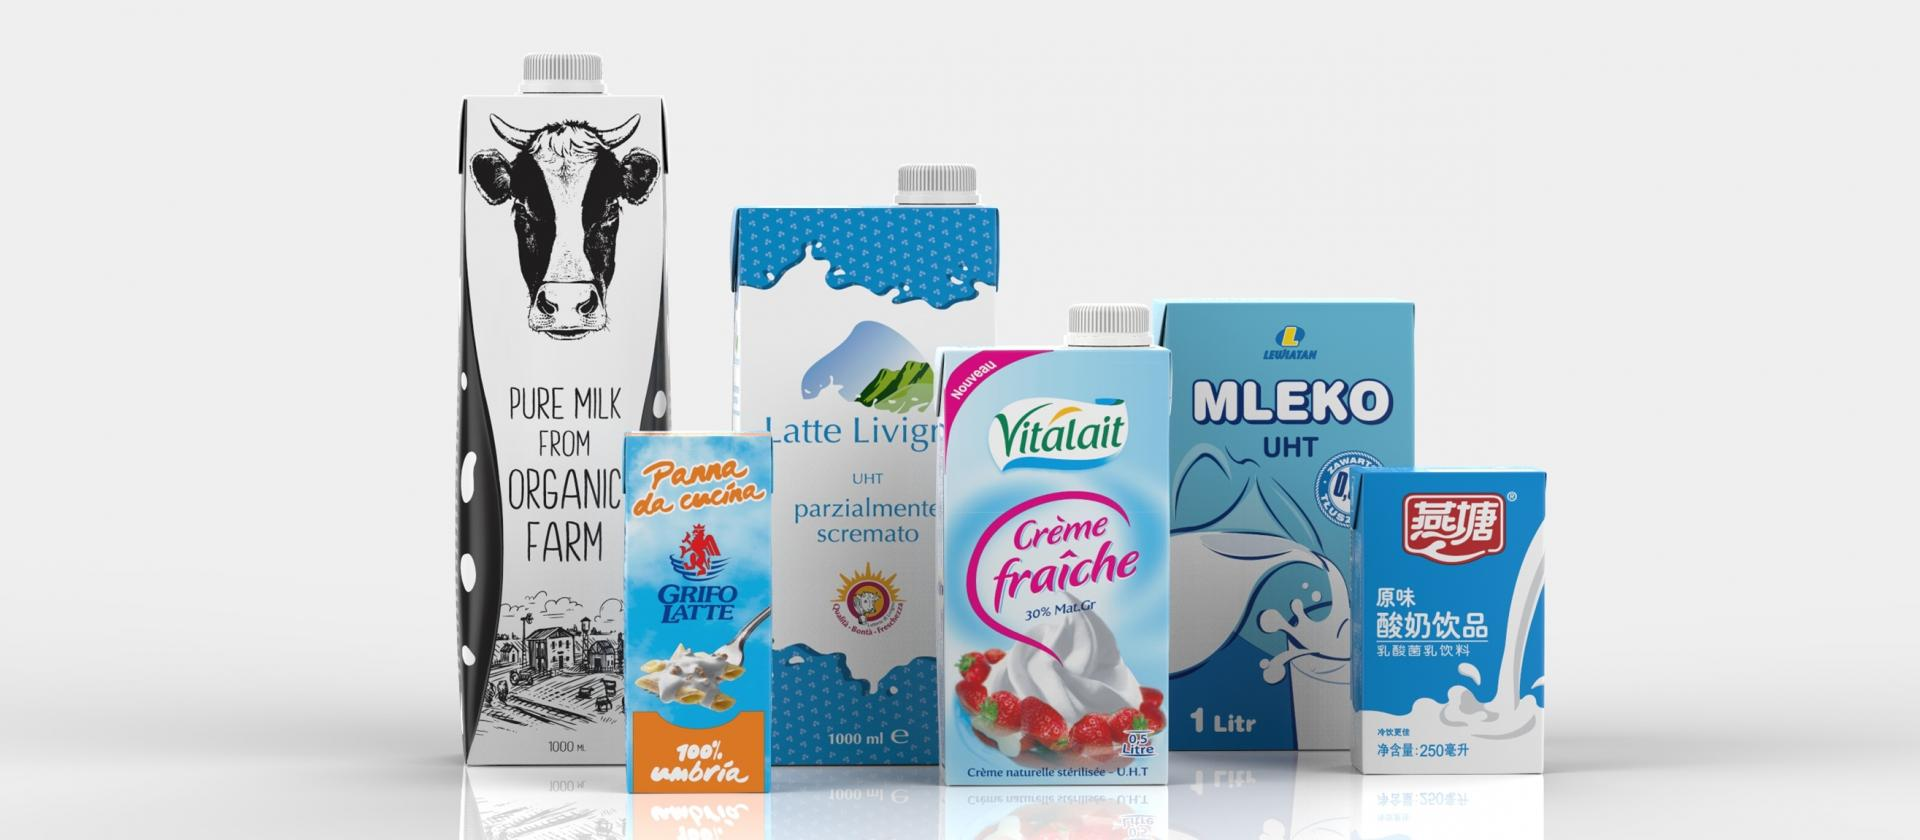 UHT Milk and Dairy products filled in IPI aseptic carton packaging